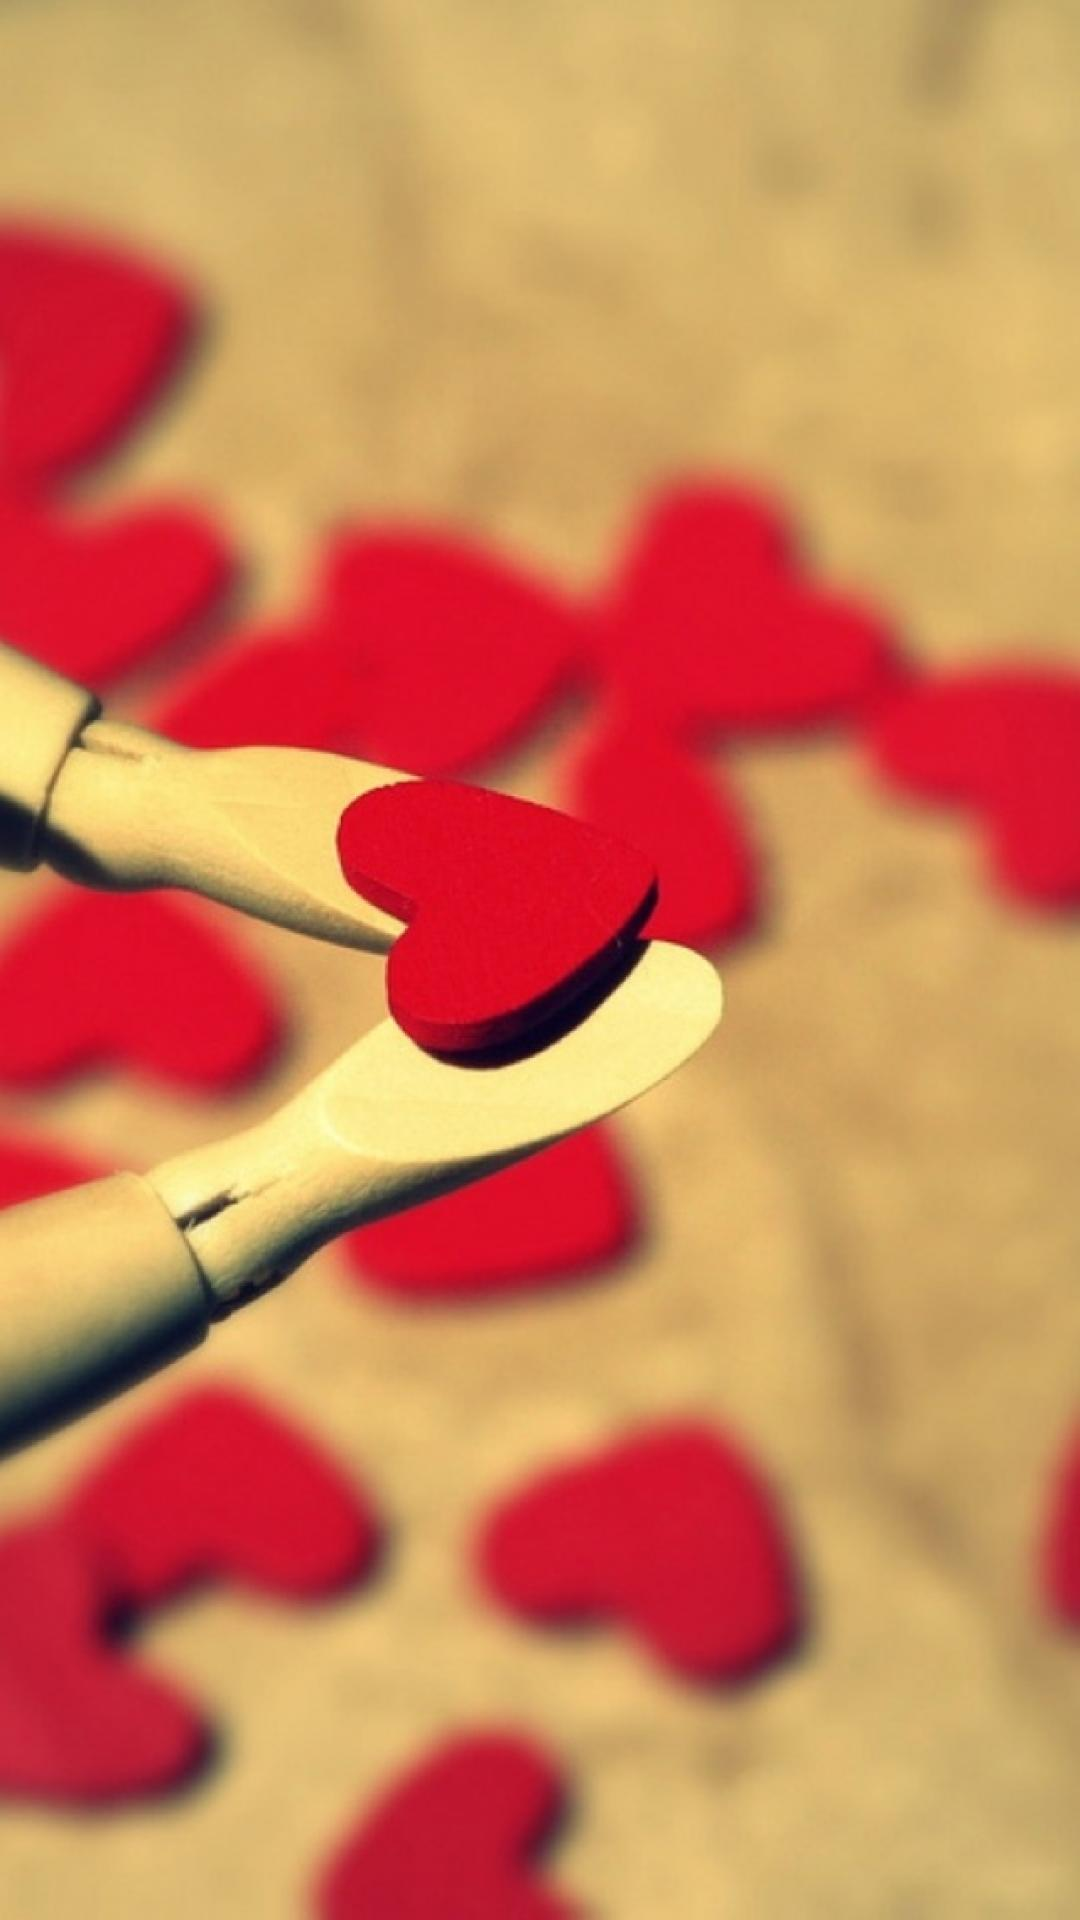 iphone-red-hearts-love-http-iphoneretina-com-gallery-php-catLove-wallpaper-wp4602960